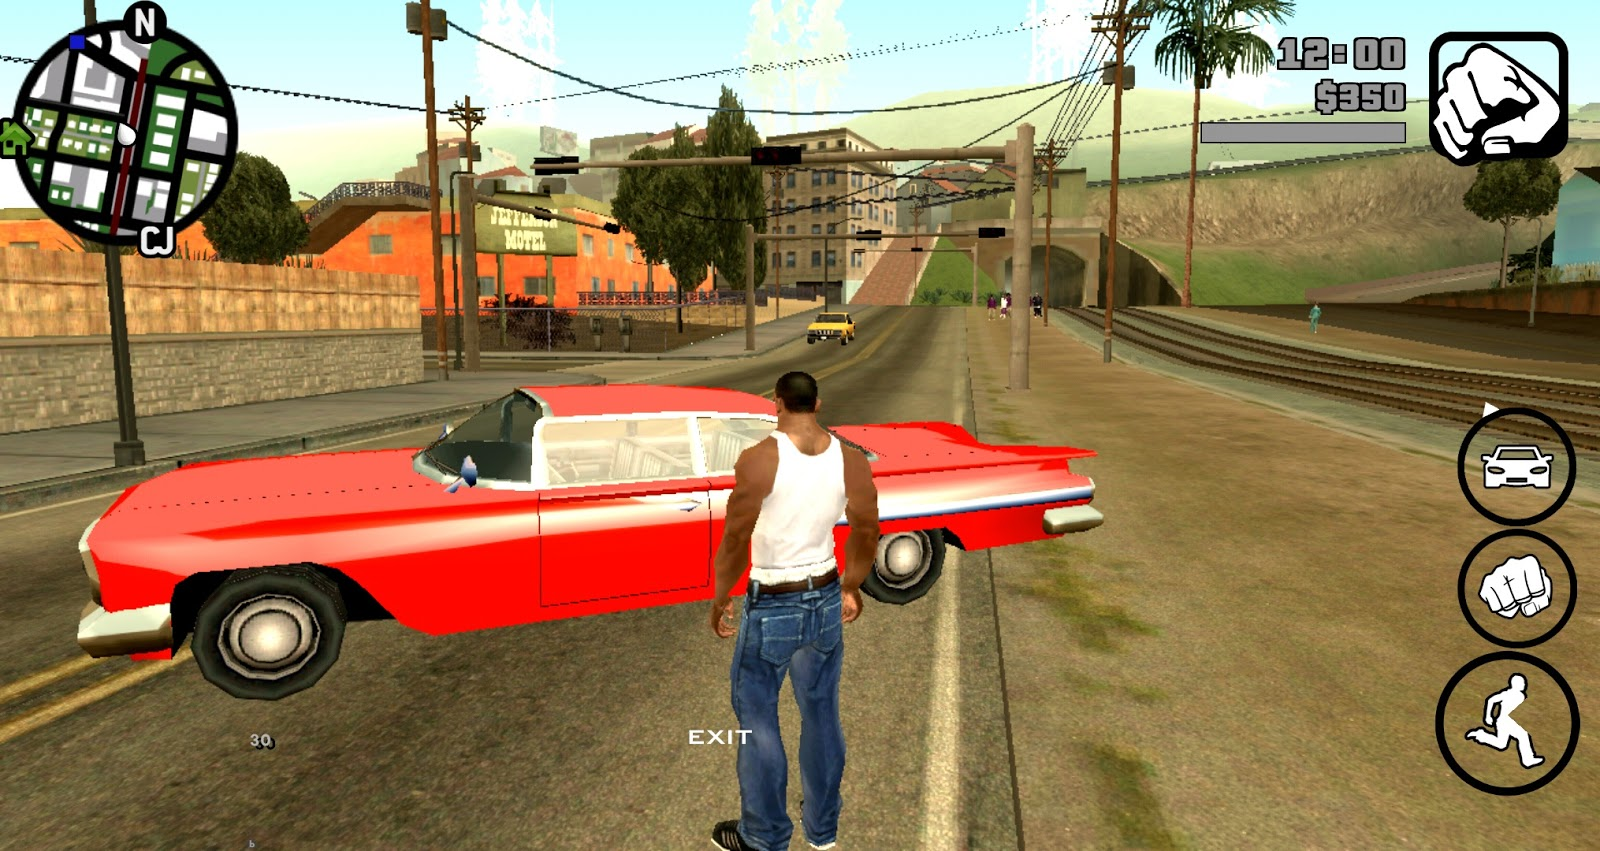 GTA 5 REDUX GRAPHICS MOD PACK 2019 FOR ANDROID - TECHNICAL